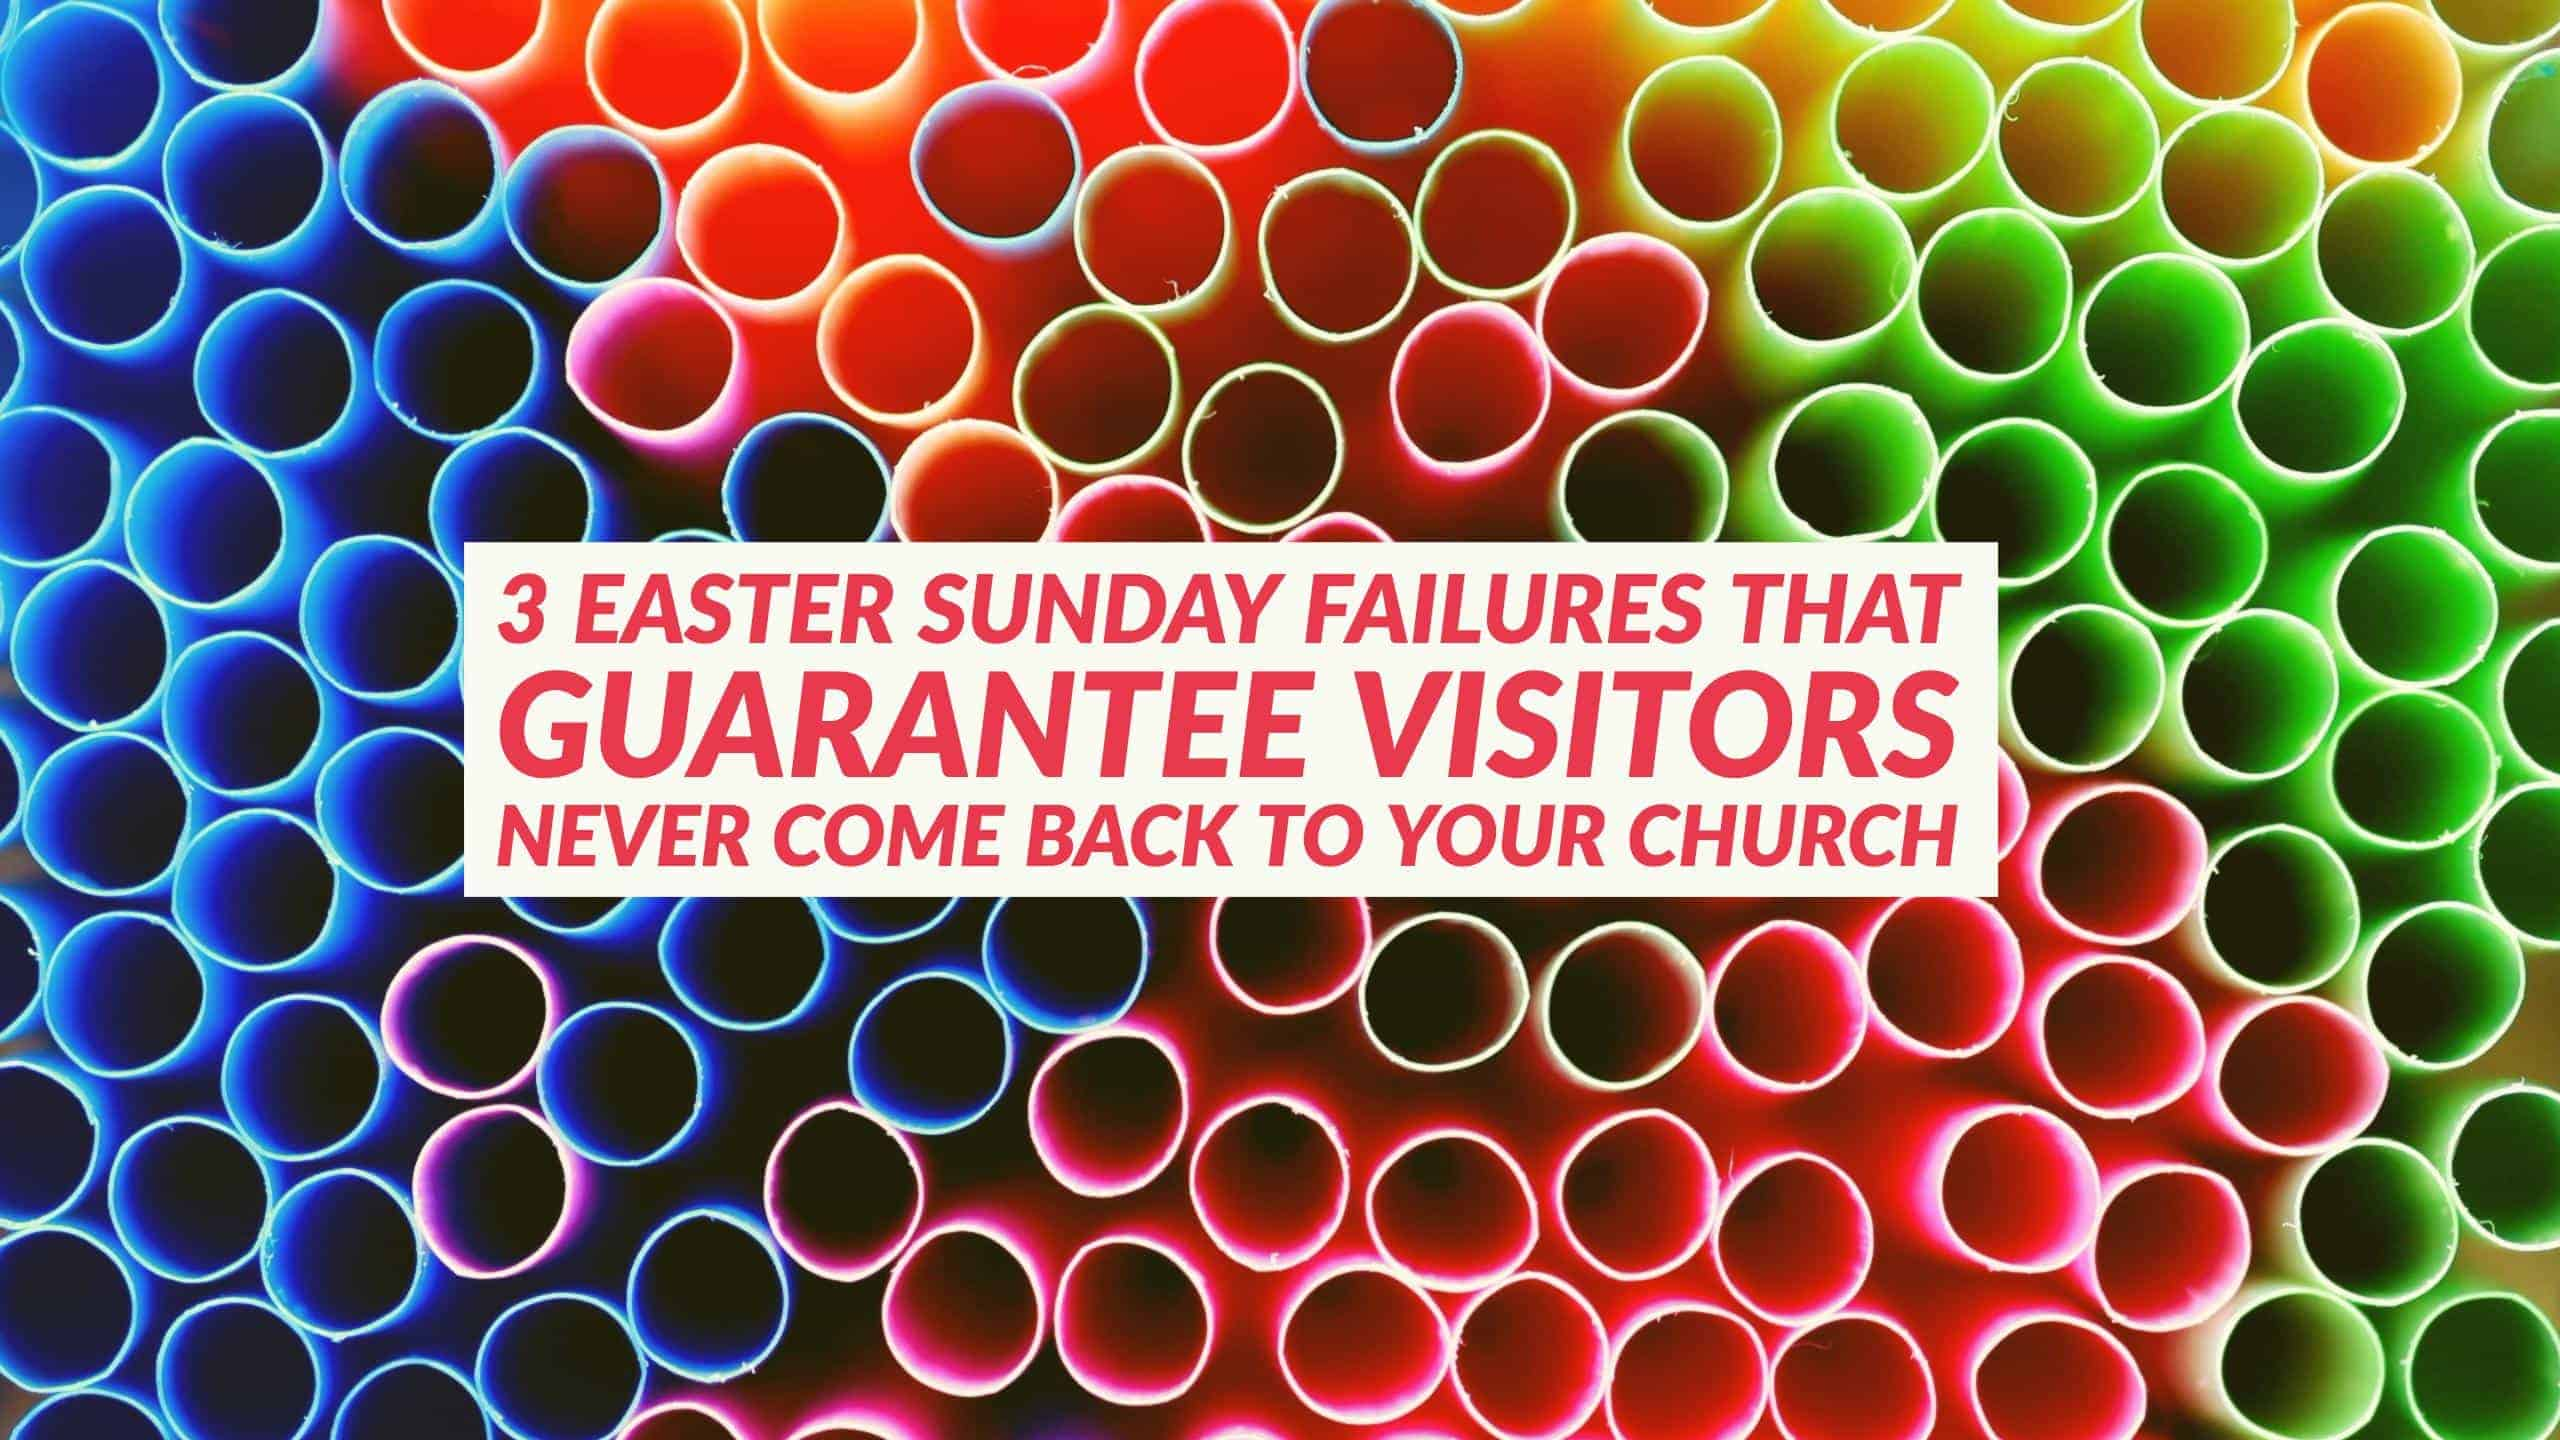 3 Easter Sunday Failures That Guarantee Visitors Never Come Back To Your Church